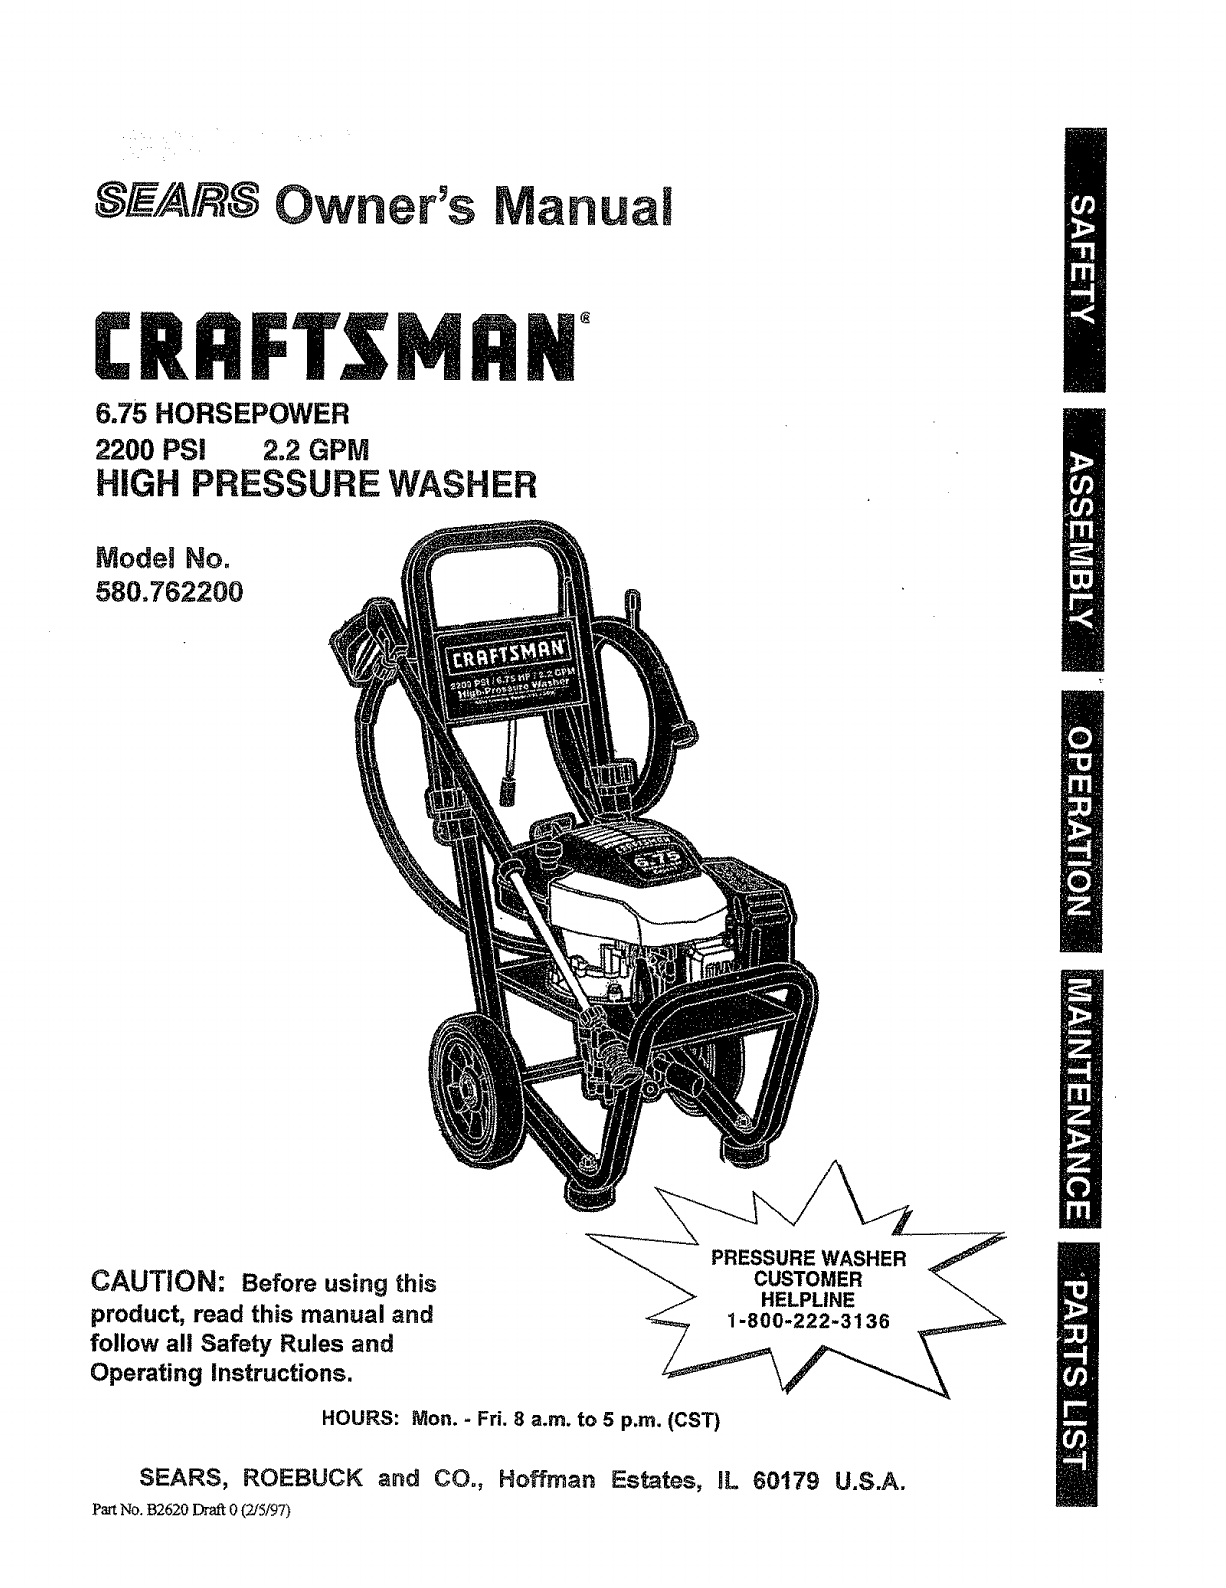 Craftsman Pressure Washer 580.7622 User Guide